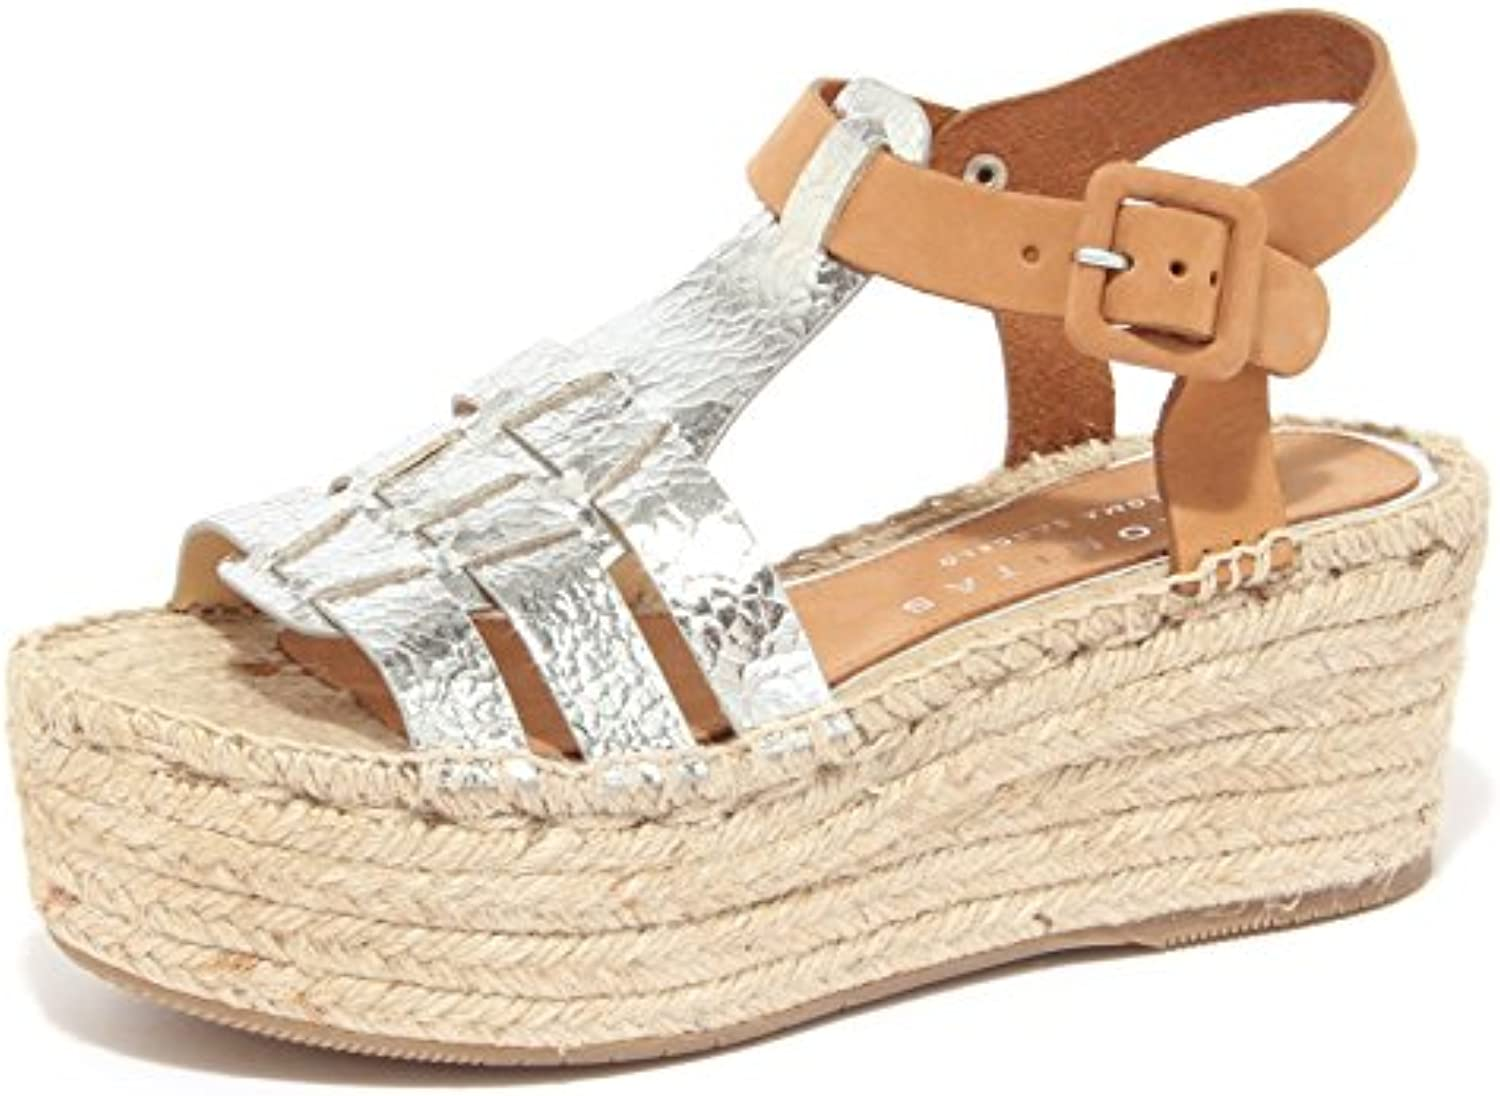 Palomitas 8895P Sandalo BY Paloma Barcelo Scarpa Donna Sandal Woman | In Linea Outlet Store  | Uomini/Donna Scarpa